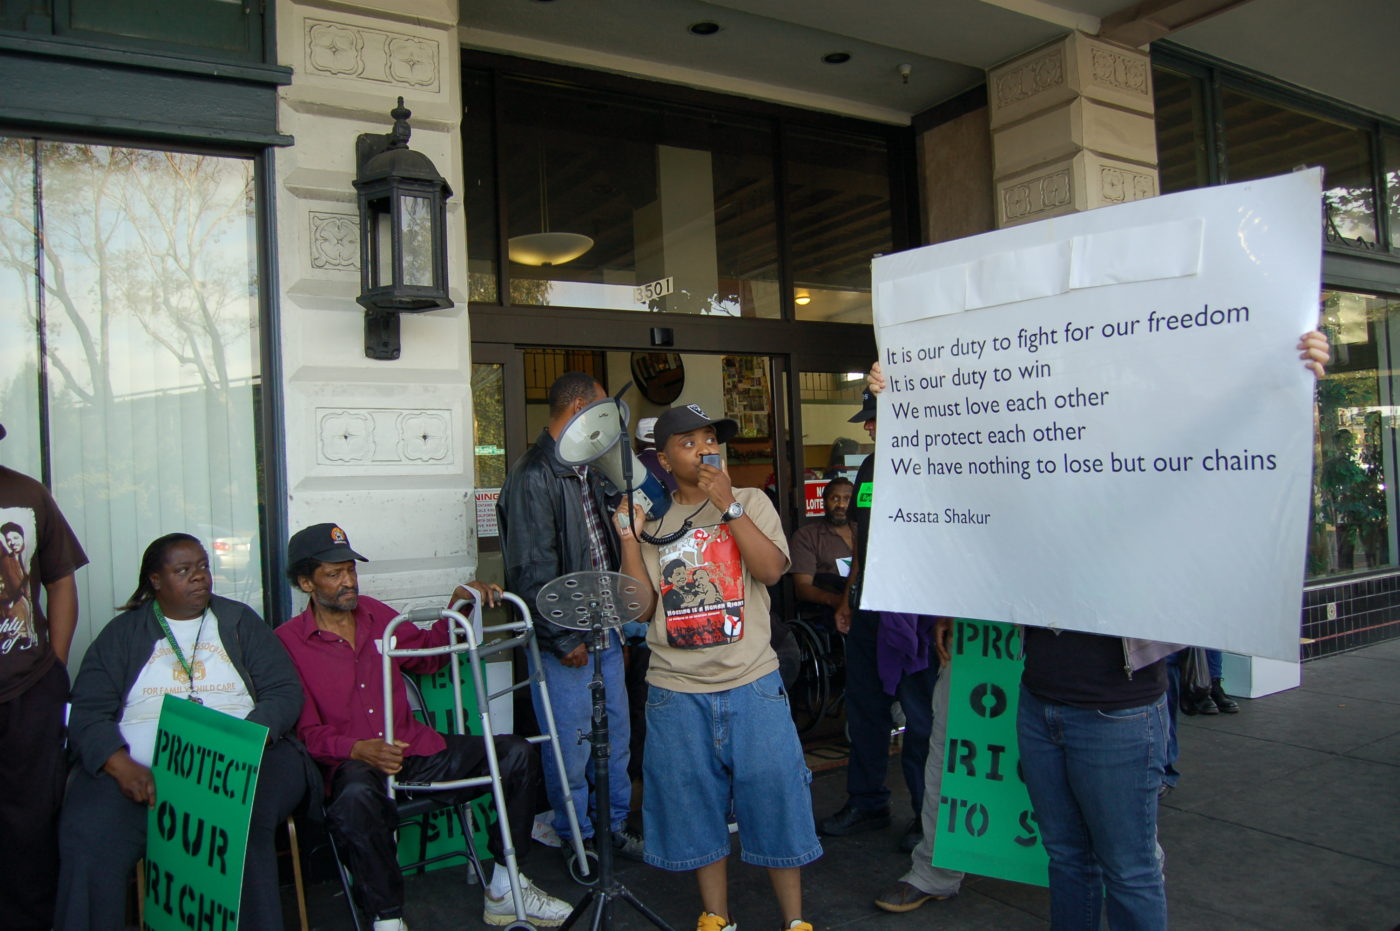 California-Hotel-tenants-rally-with-Assata-Shakur-quote-071408-by-Just-Cause-Oakland-1-1400x931, Big victory for California Hotel tenants, Archives 1976-2008 Local News & Views